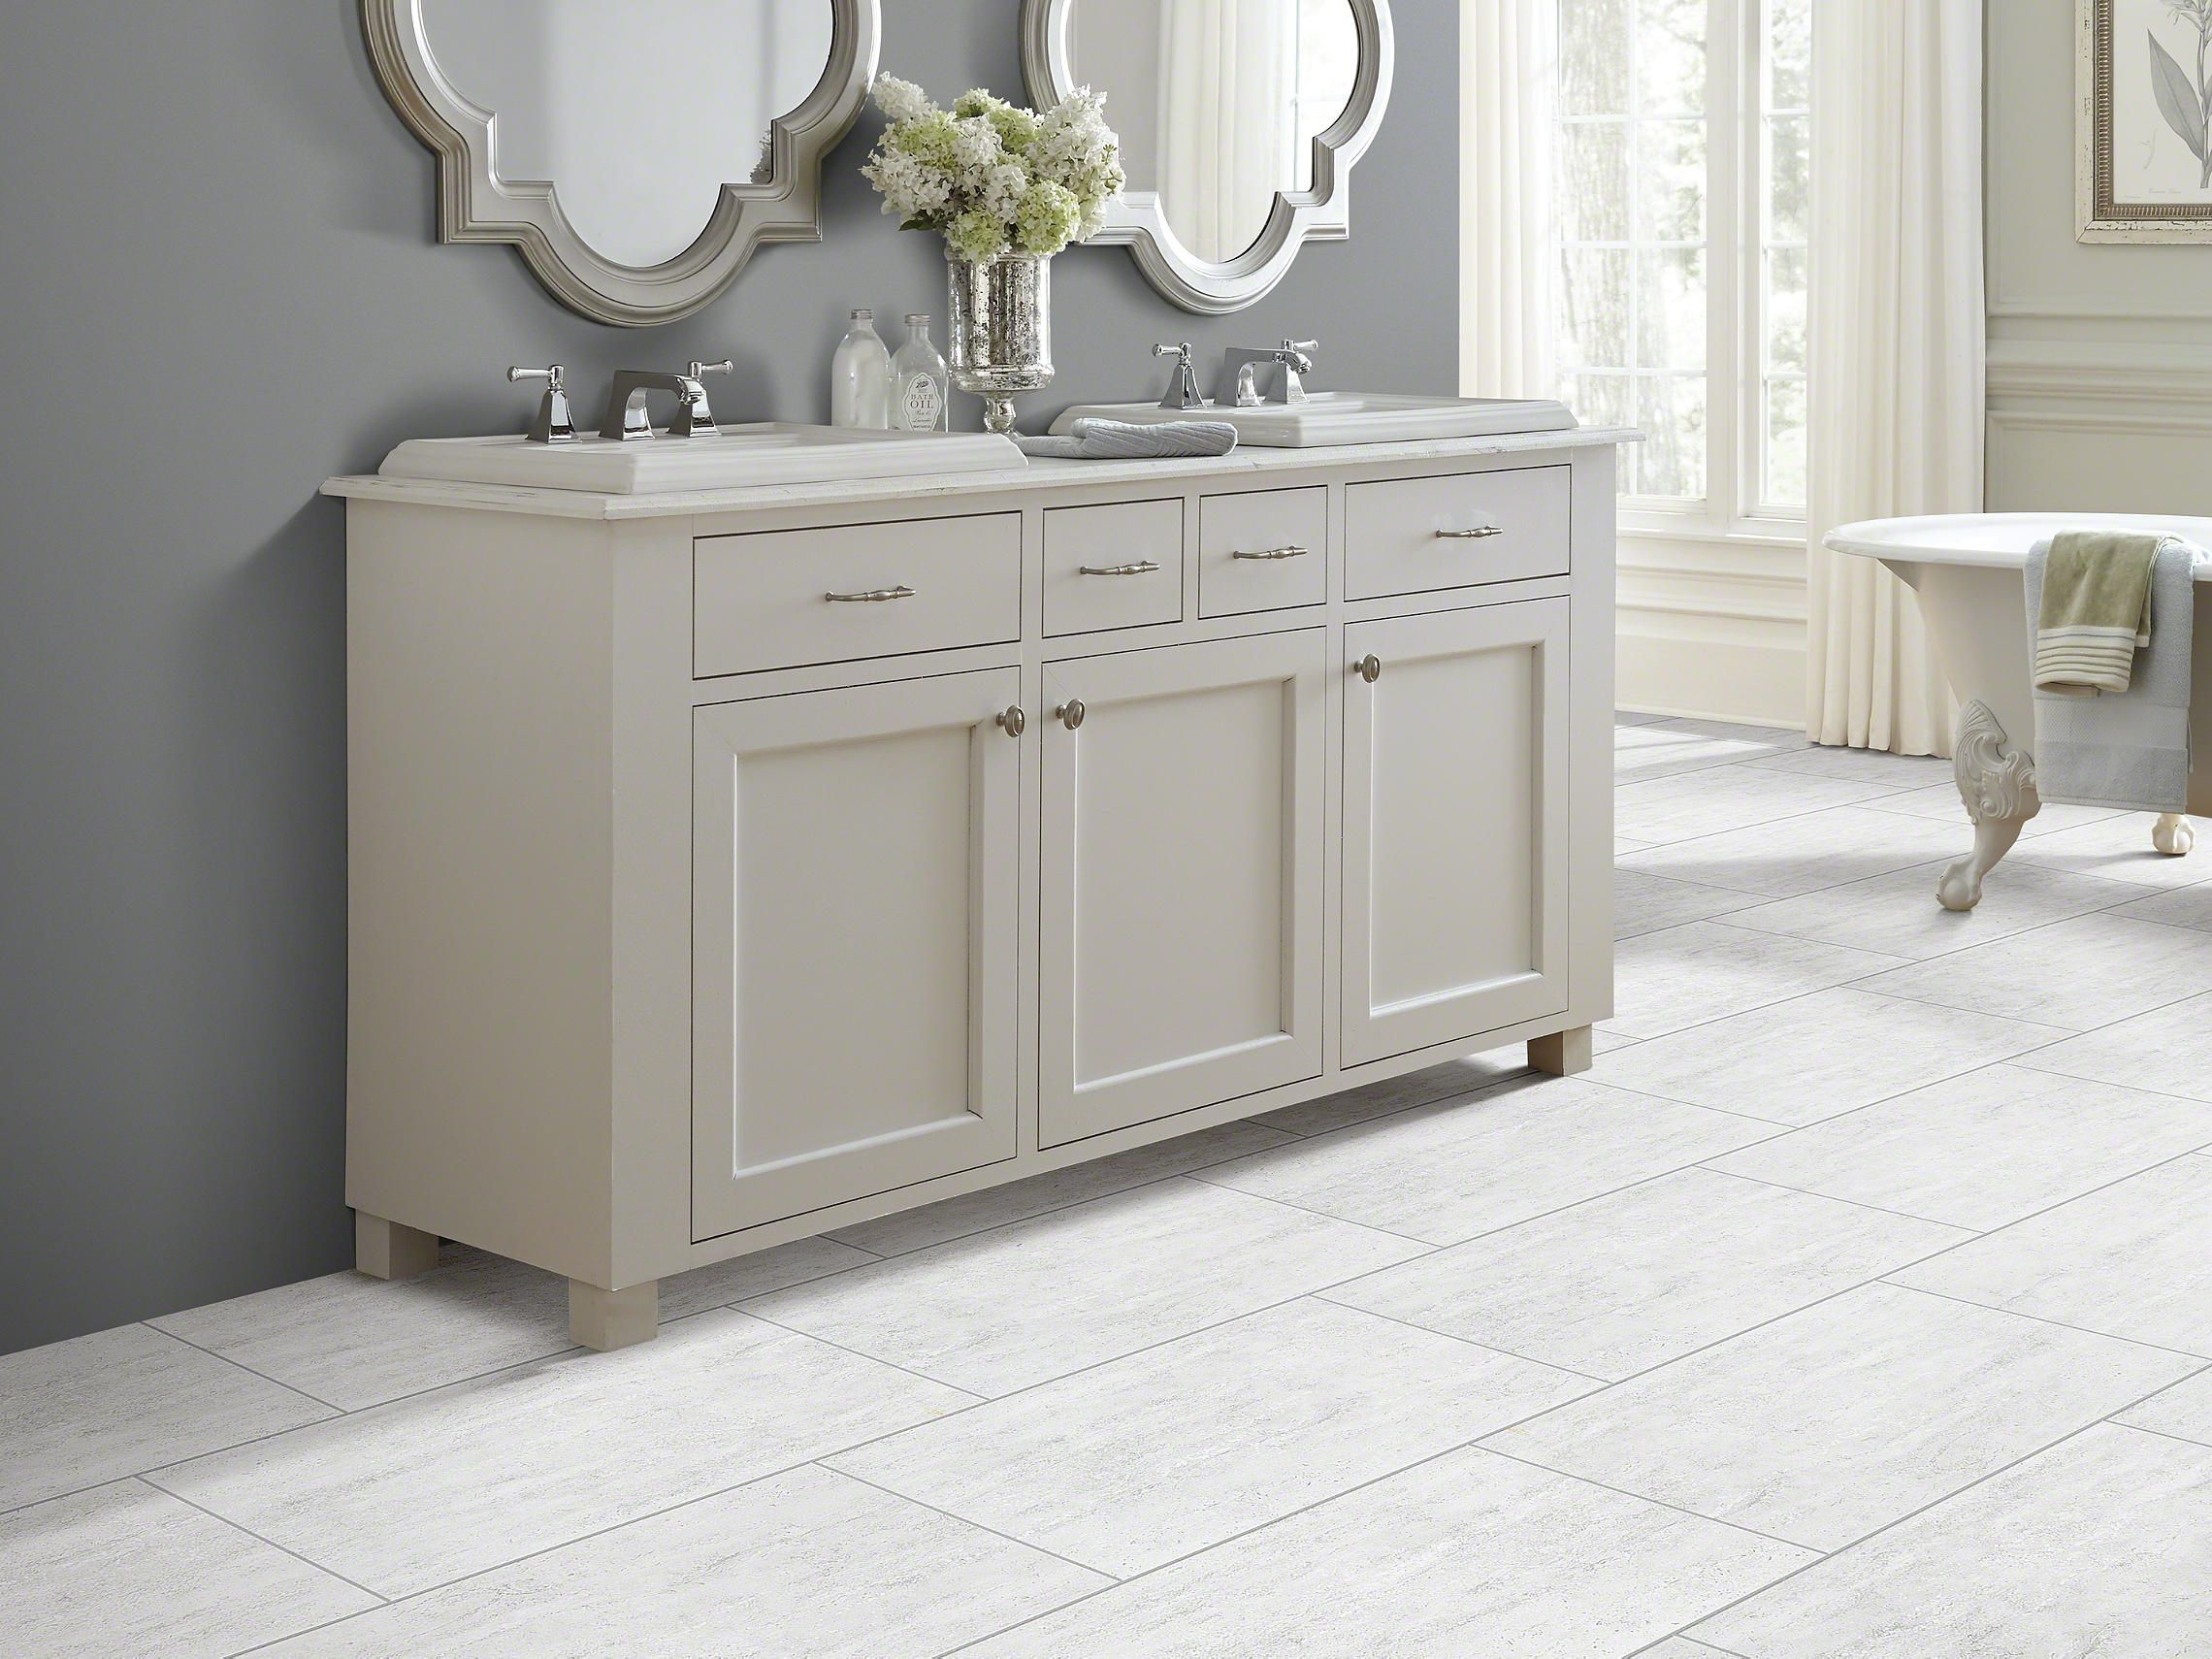 Classico 12x24 light grey room view ceramic tile pinterest shaws classico light grey tile and stone for flooring and wall projects from backsplashes to fireplaces wide variety of tile flooring and wall tile dailygadgetfo Image collections